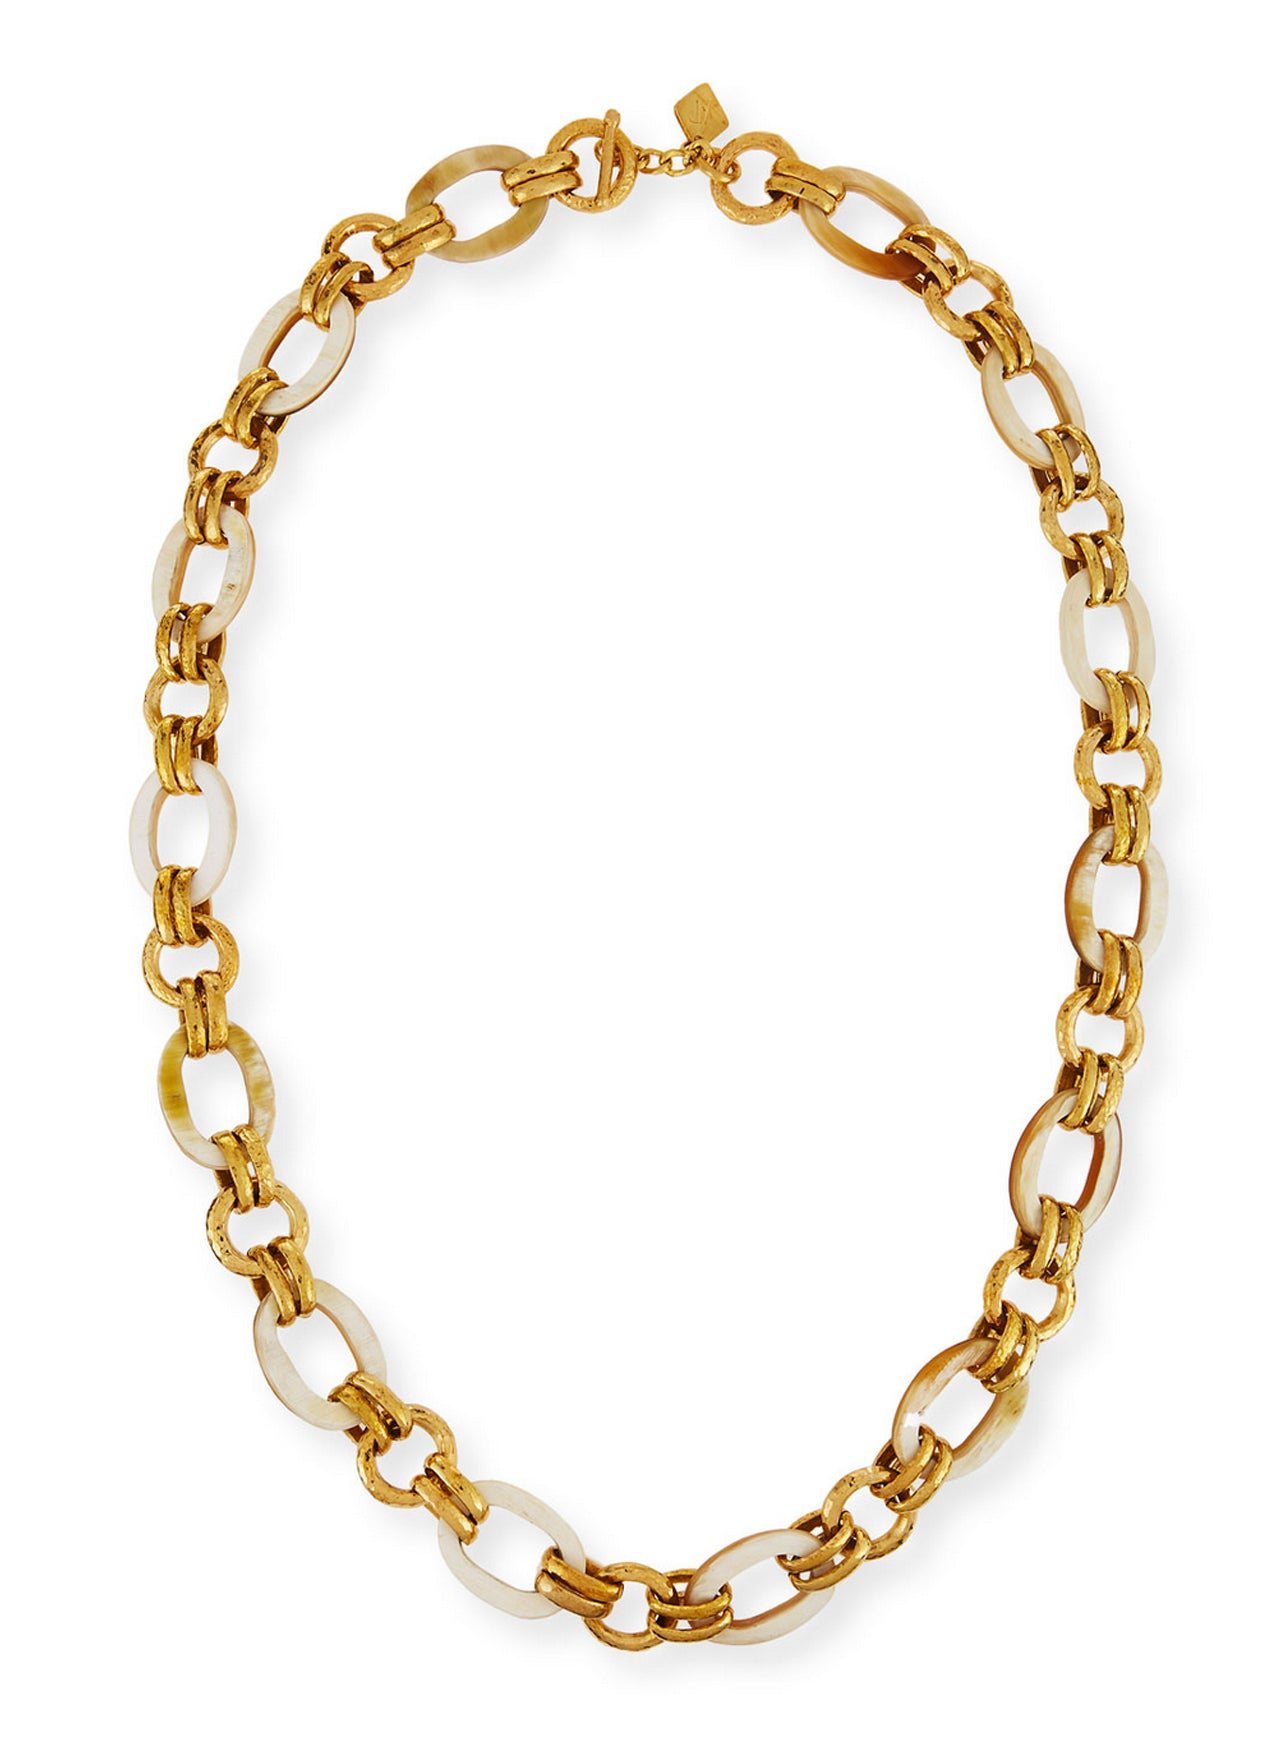 Ashley Pittman Ikulu Dark Horn & Bronze Chain Necklace, 36